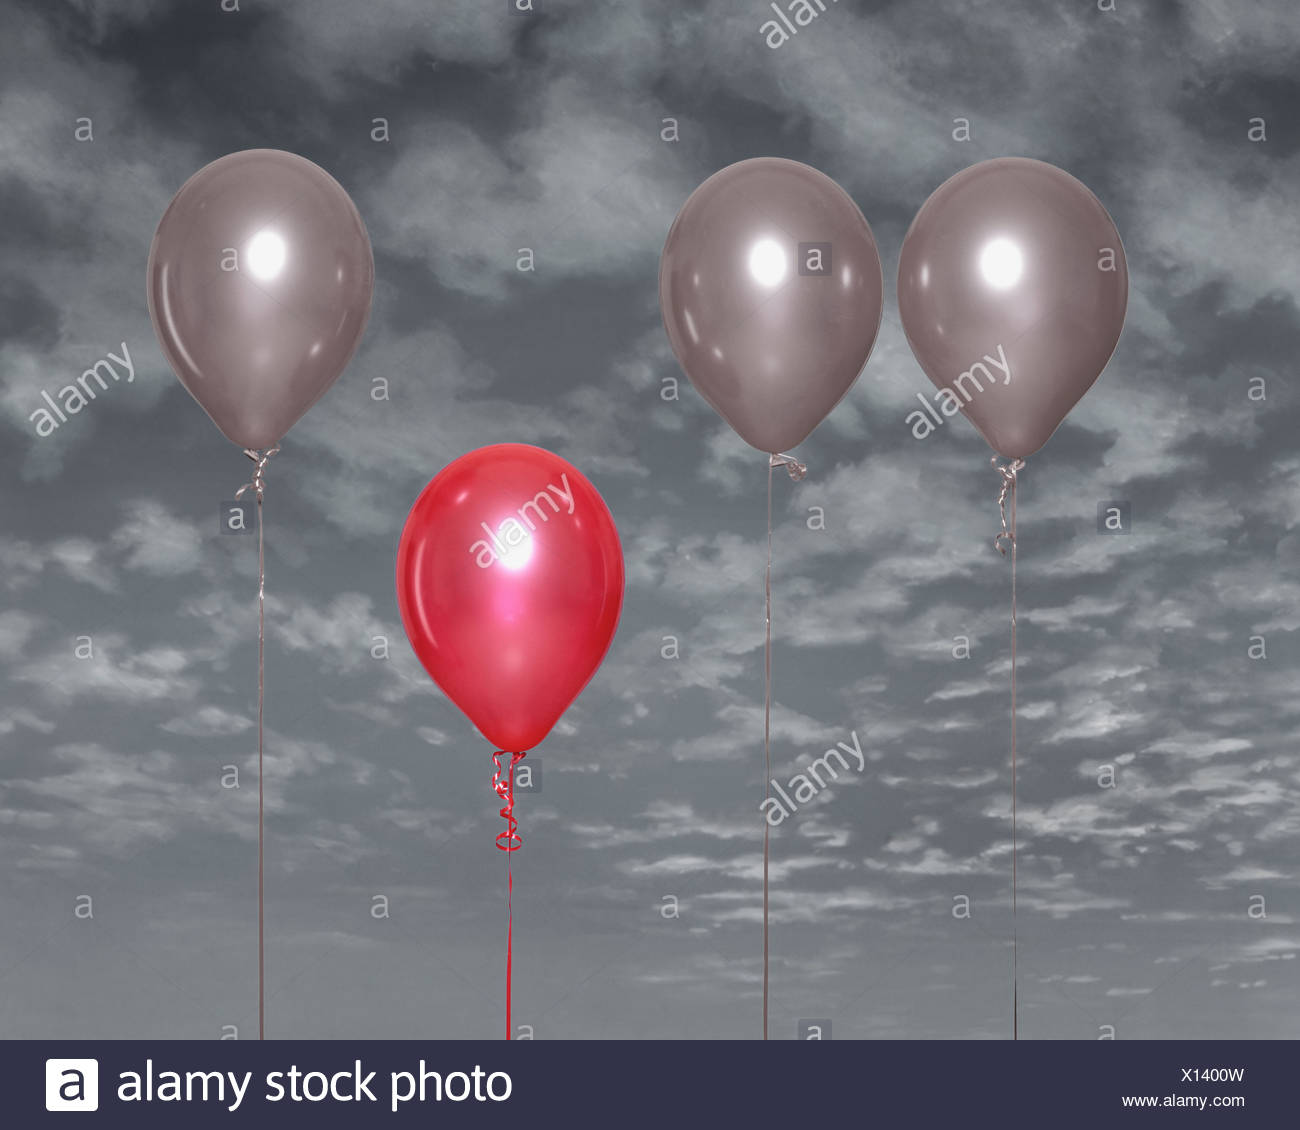 Red balloon standing out - Stock Image